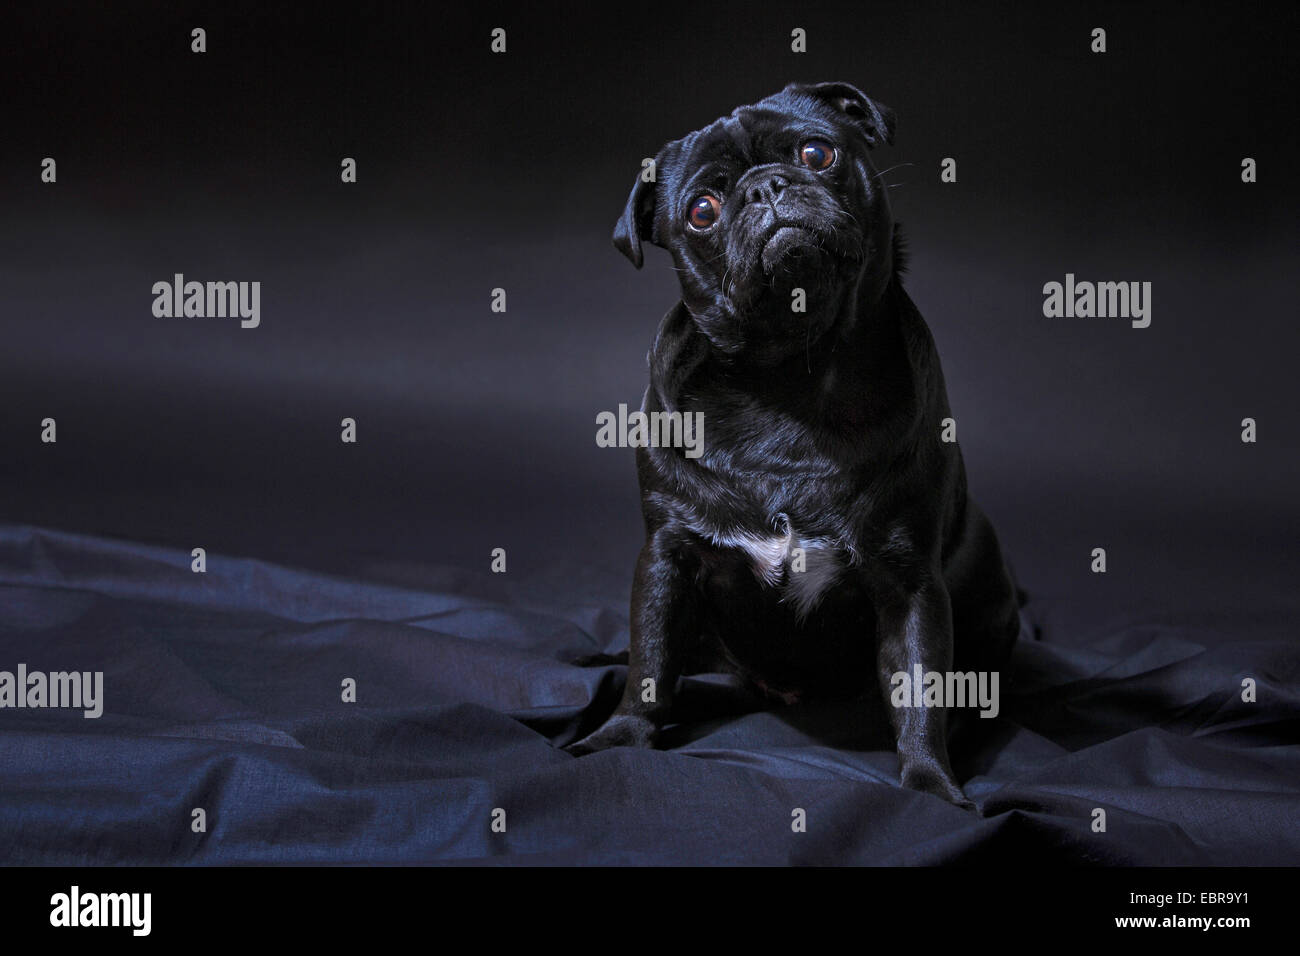 Pug (Canis lupus f. familiaris), black pug sitting on a black blanket and keeping its head tilted - Stock Image